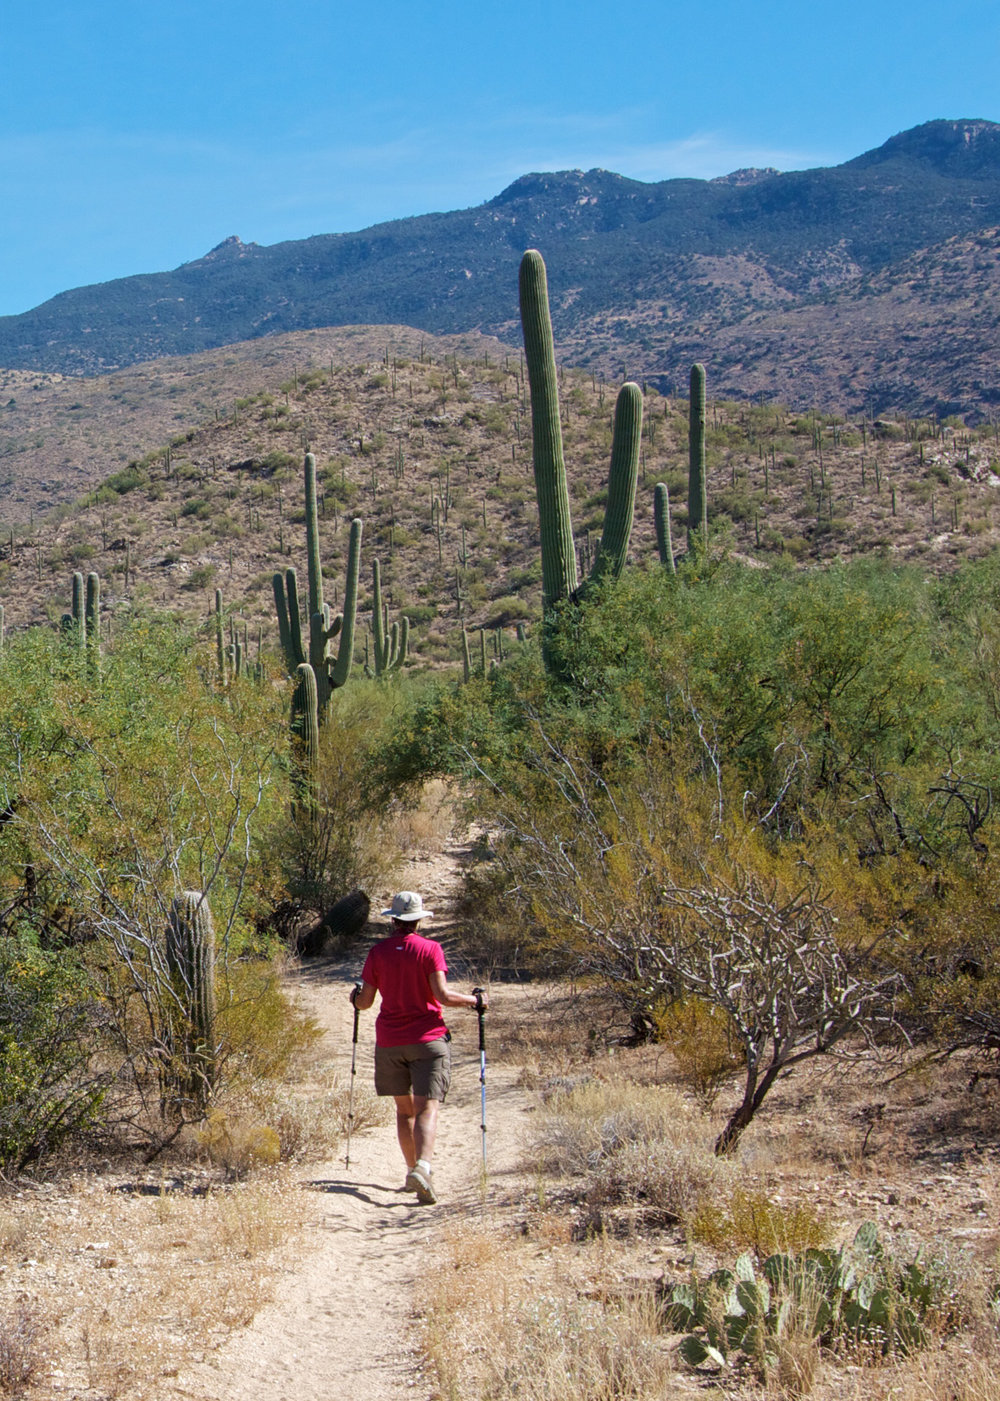 Terry trekking the trails of the Rincon Mountain District's Cactus Forest during park visit  #21 .